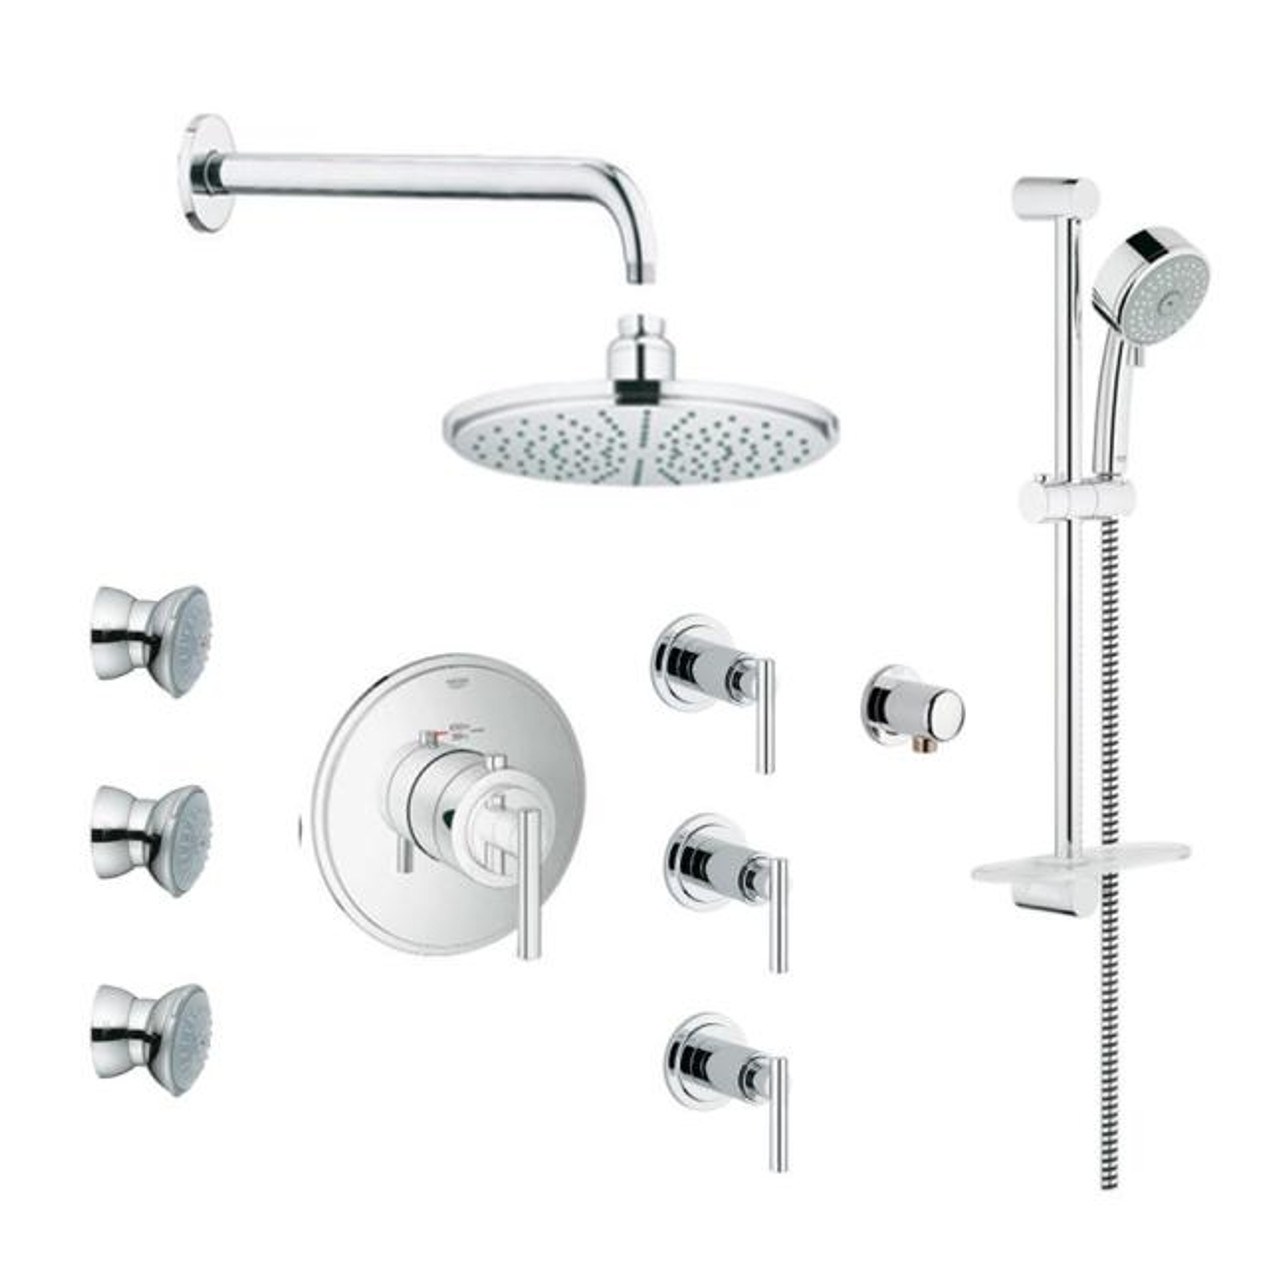 Grohe Timeless Thm Custom Shower Kit 117162 York Taps